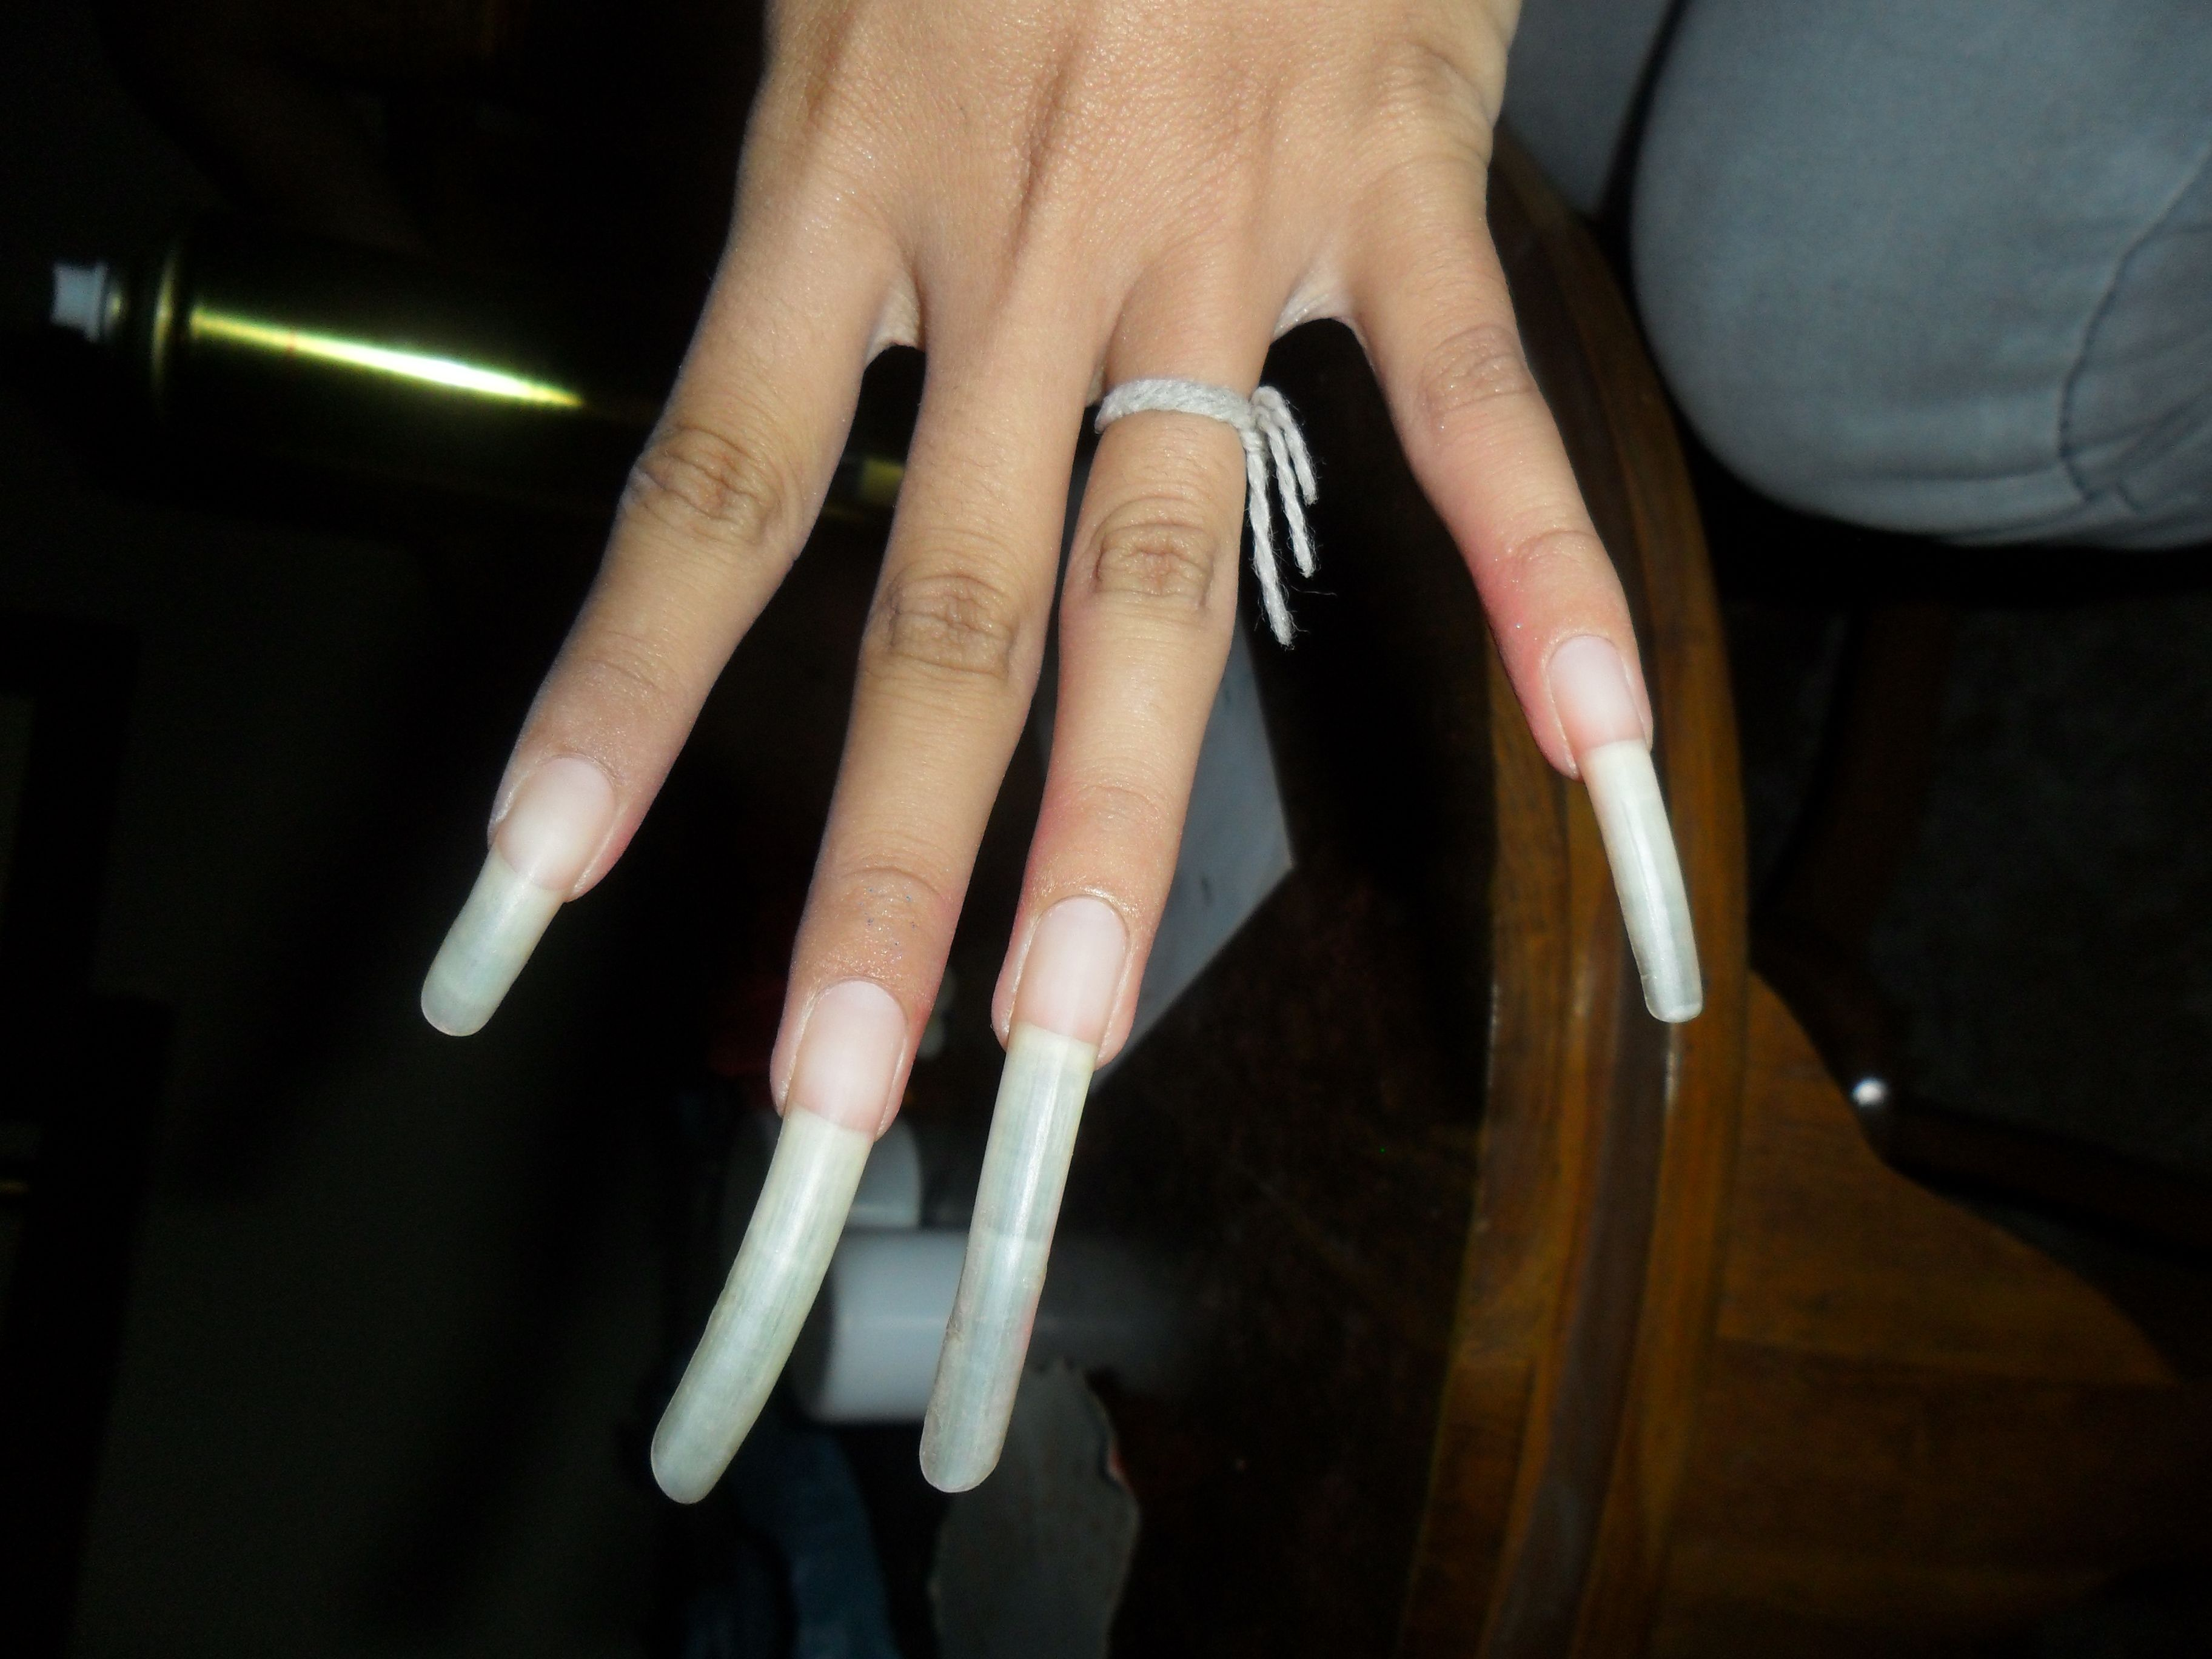 A Dancers Nails In Bali Women Who Have Super Long Nails Are Known To Be Only Dancers Long Natural Nails Natural Nails Long Nails